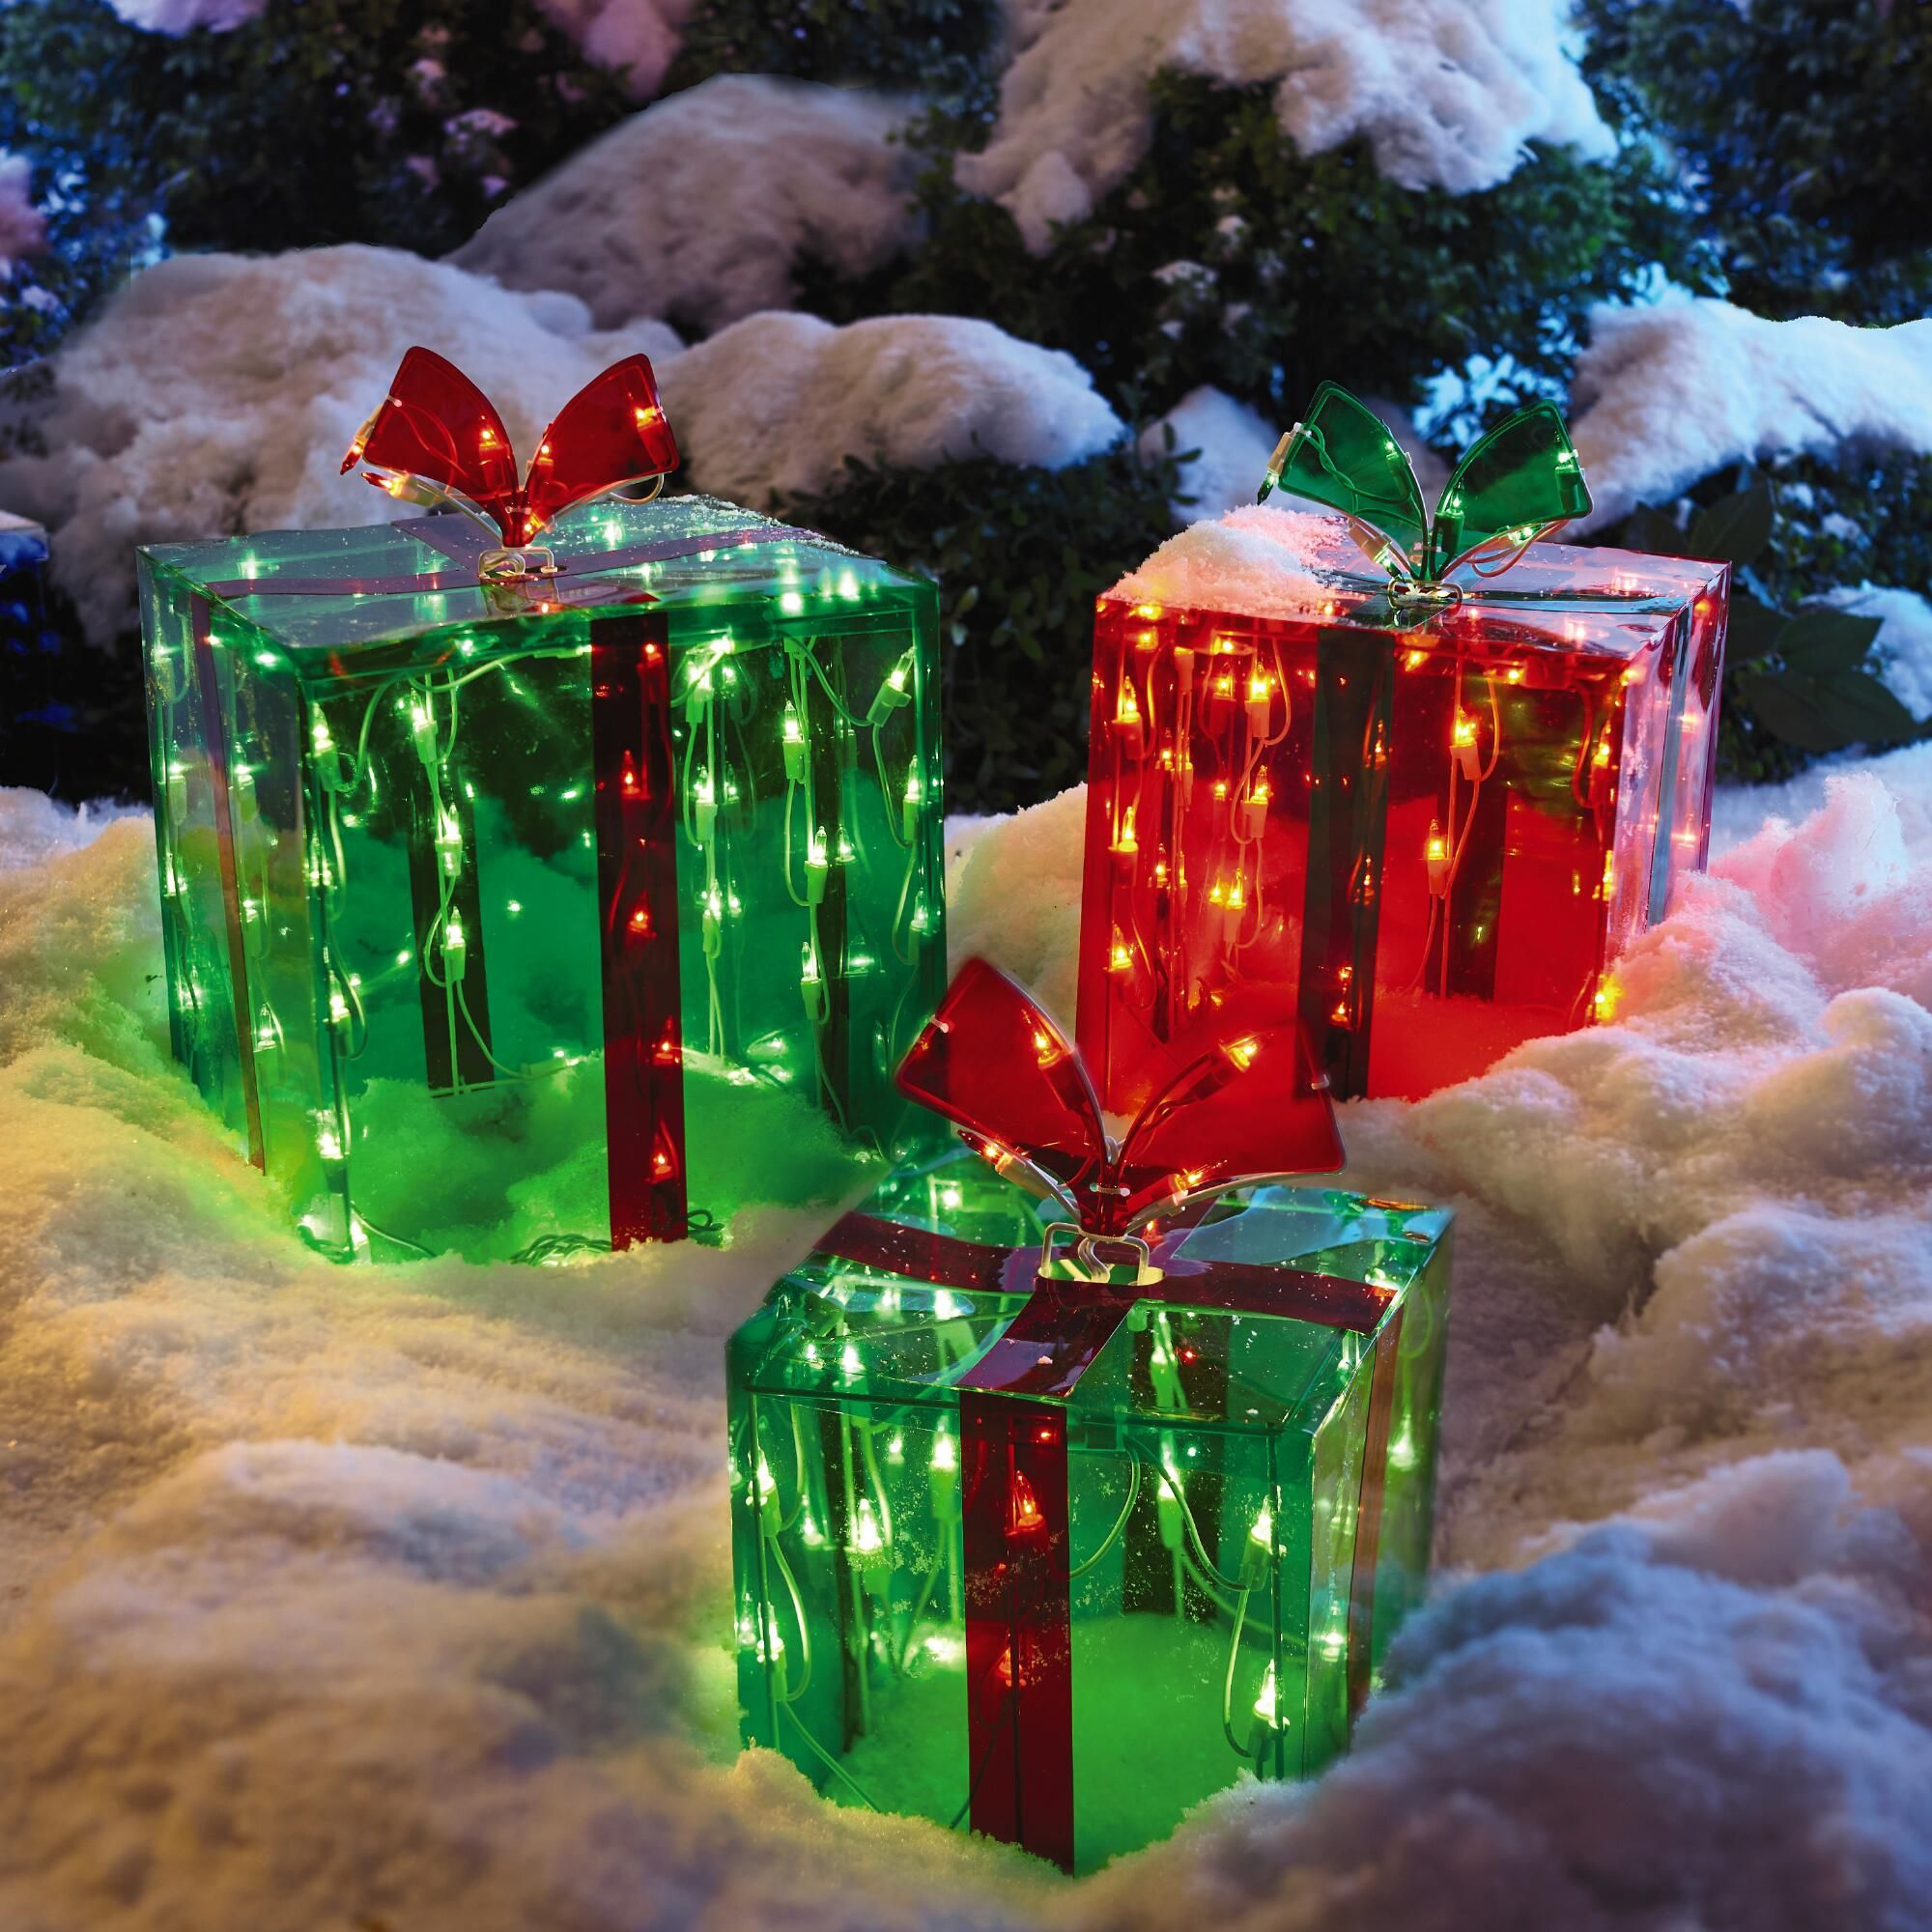 the set of 3 gift boxes with clear lights makes a cheerful holiday statement in the yard on the porch or anywhere inside the house